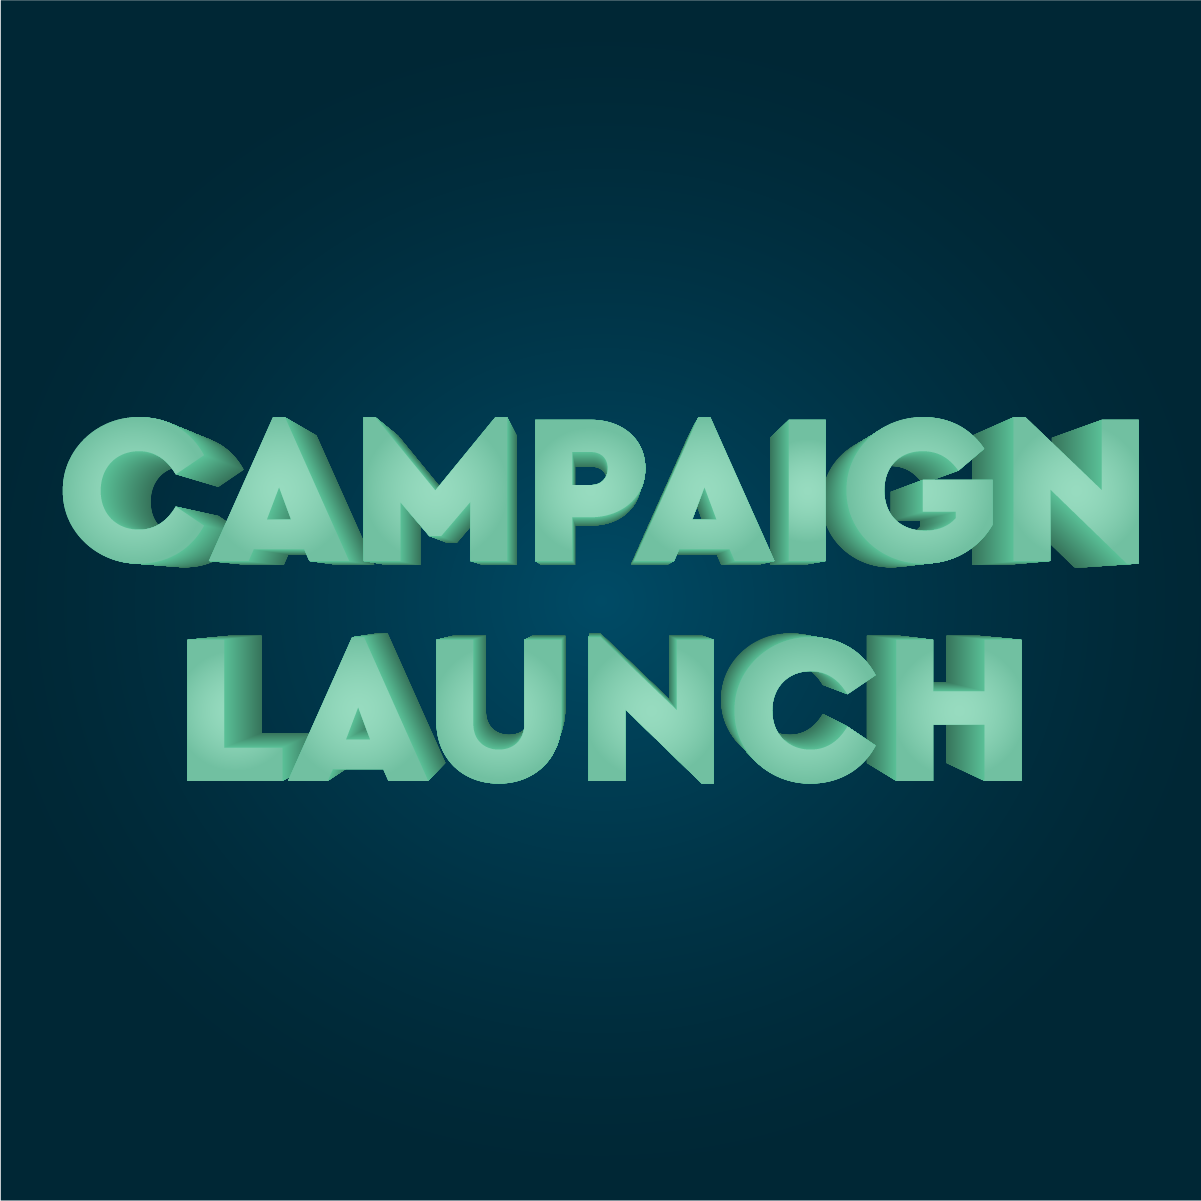 Step 3: Create and launch the campaign image